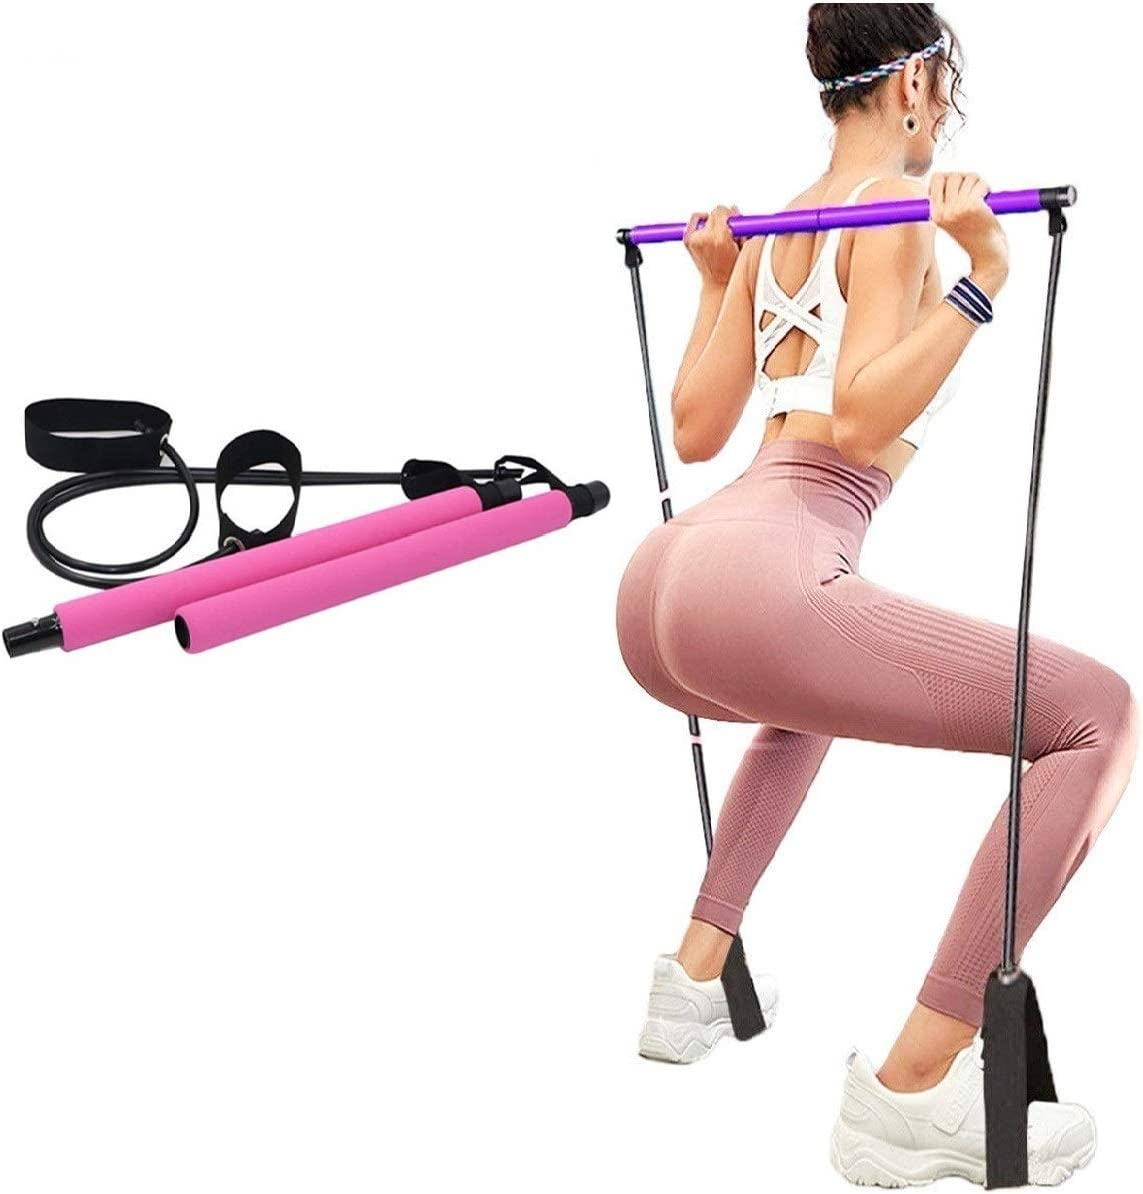 Portable Pilates Stick Yoga Exercise Pilates Bar, Yoga Pilates Bar Reformer Kit, Pilates Bar Kit with Resistance Band,Home Gym Pilates with Foot Loop for Total Body Workout